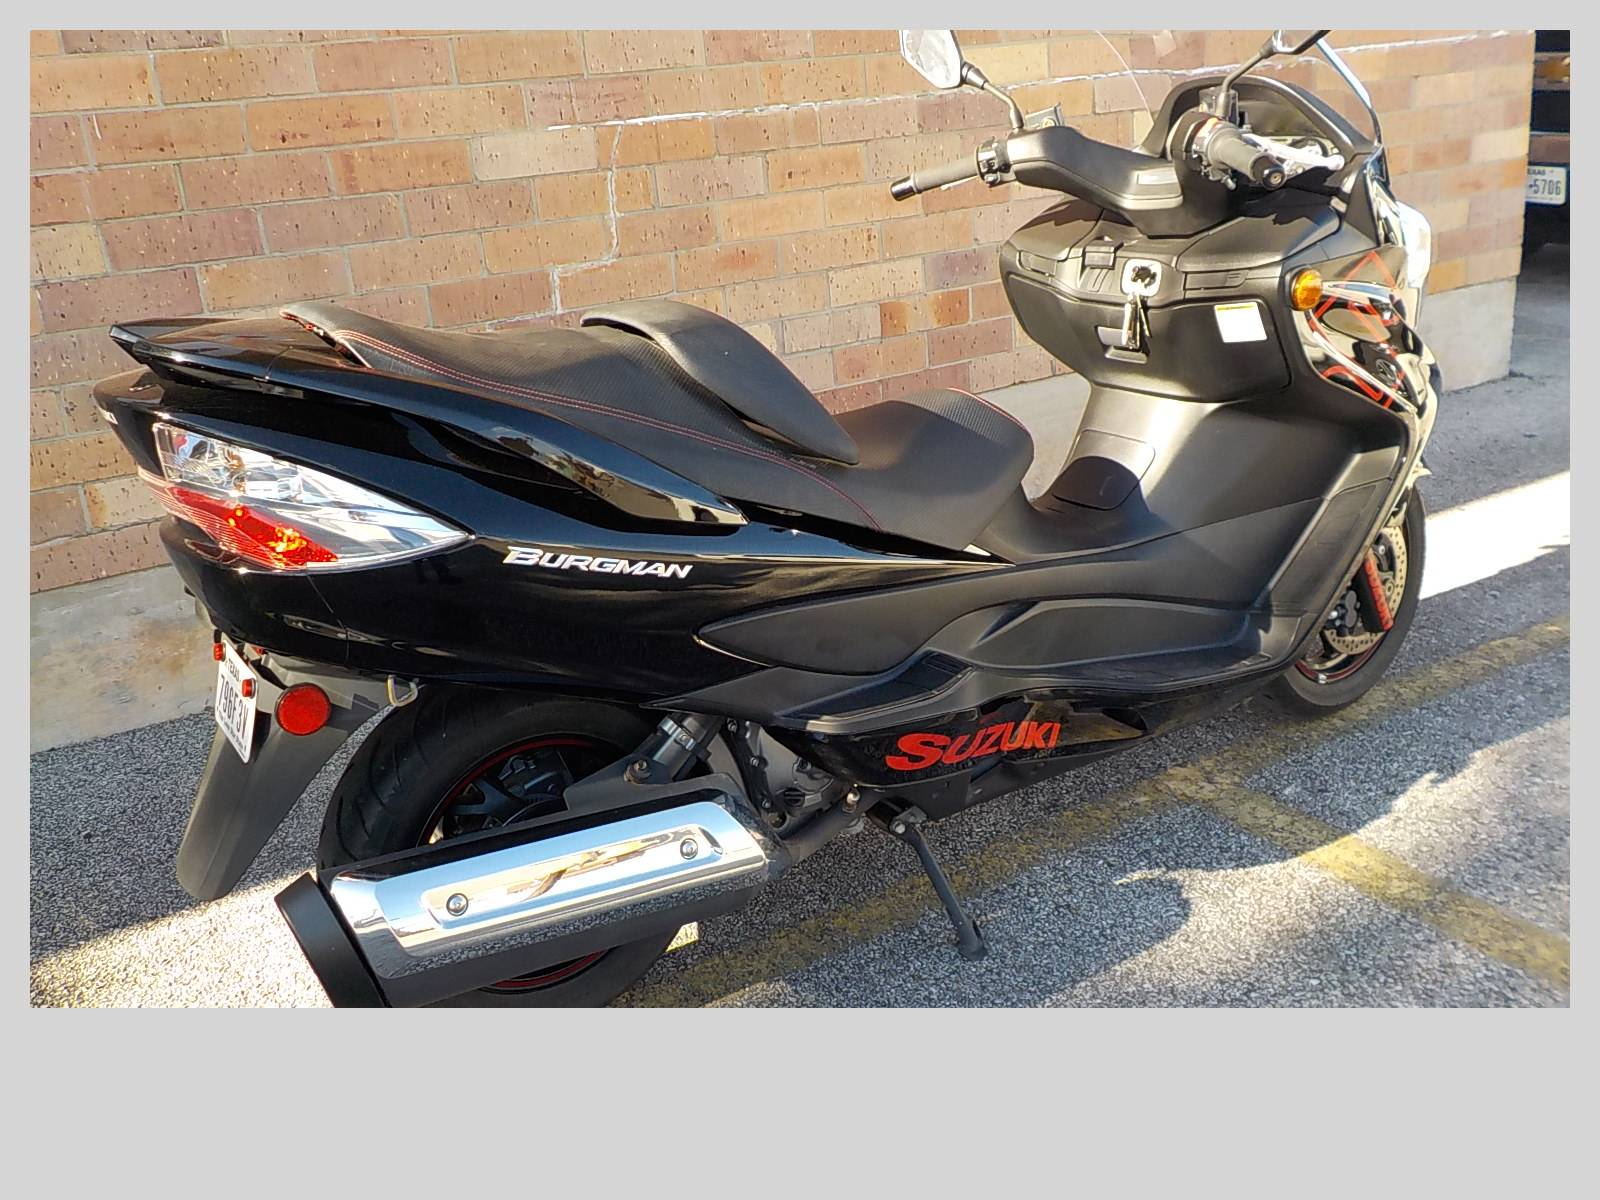 2014 Suzuki Burgman™ 400 ABS in San Antonio, Texas - Photo 5